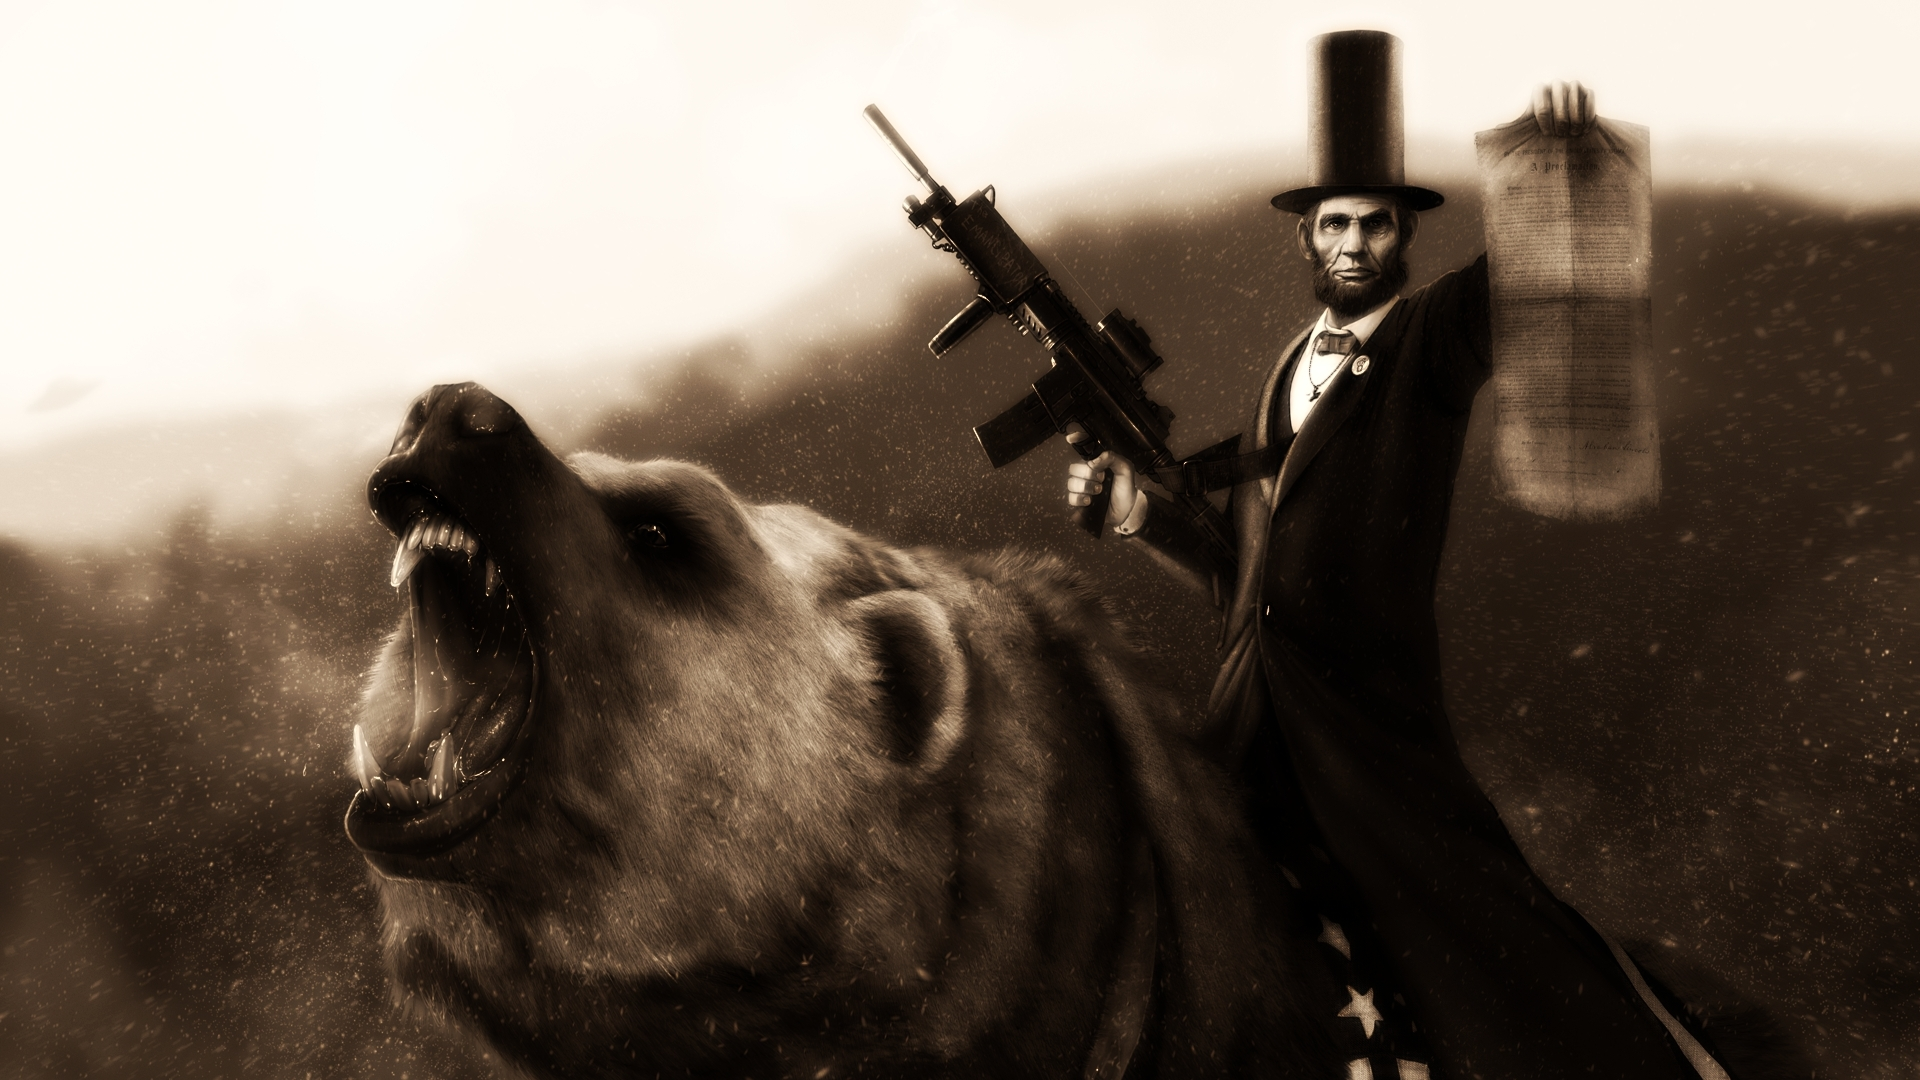 Download Wallpapers Download 1680x1050 abraham lincoln 1680x1050